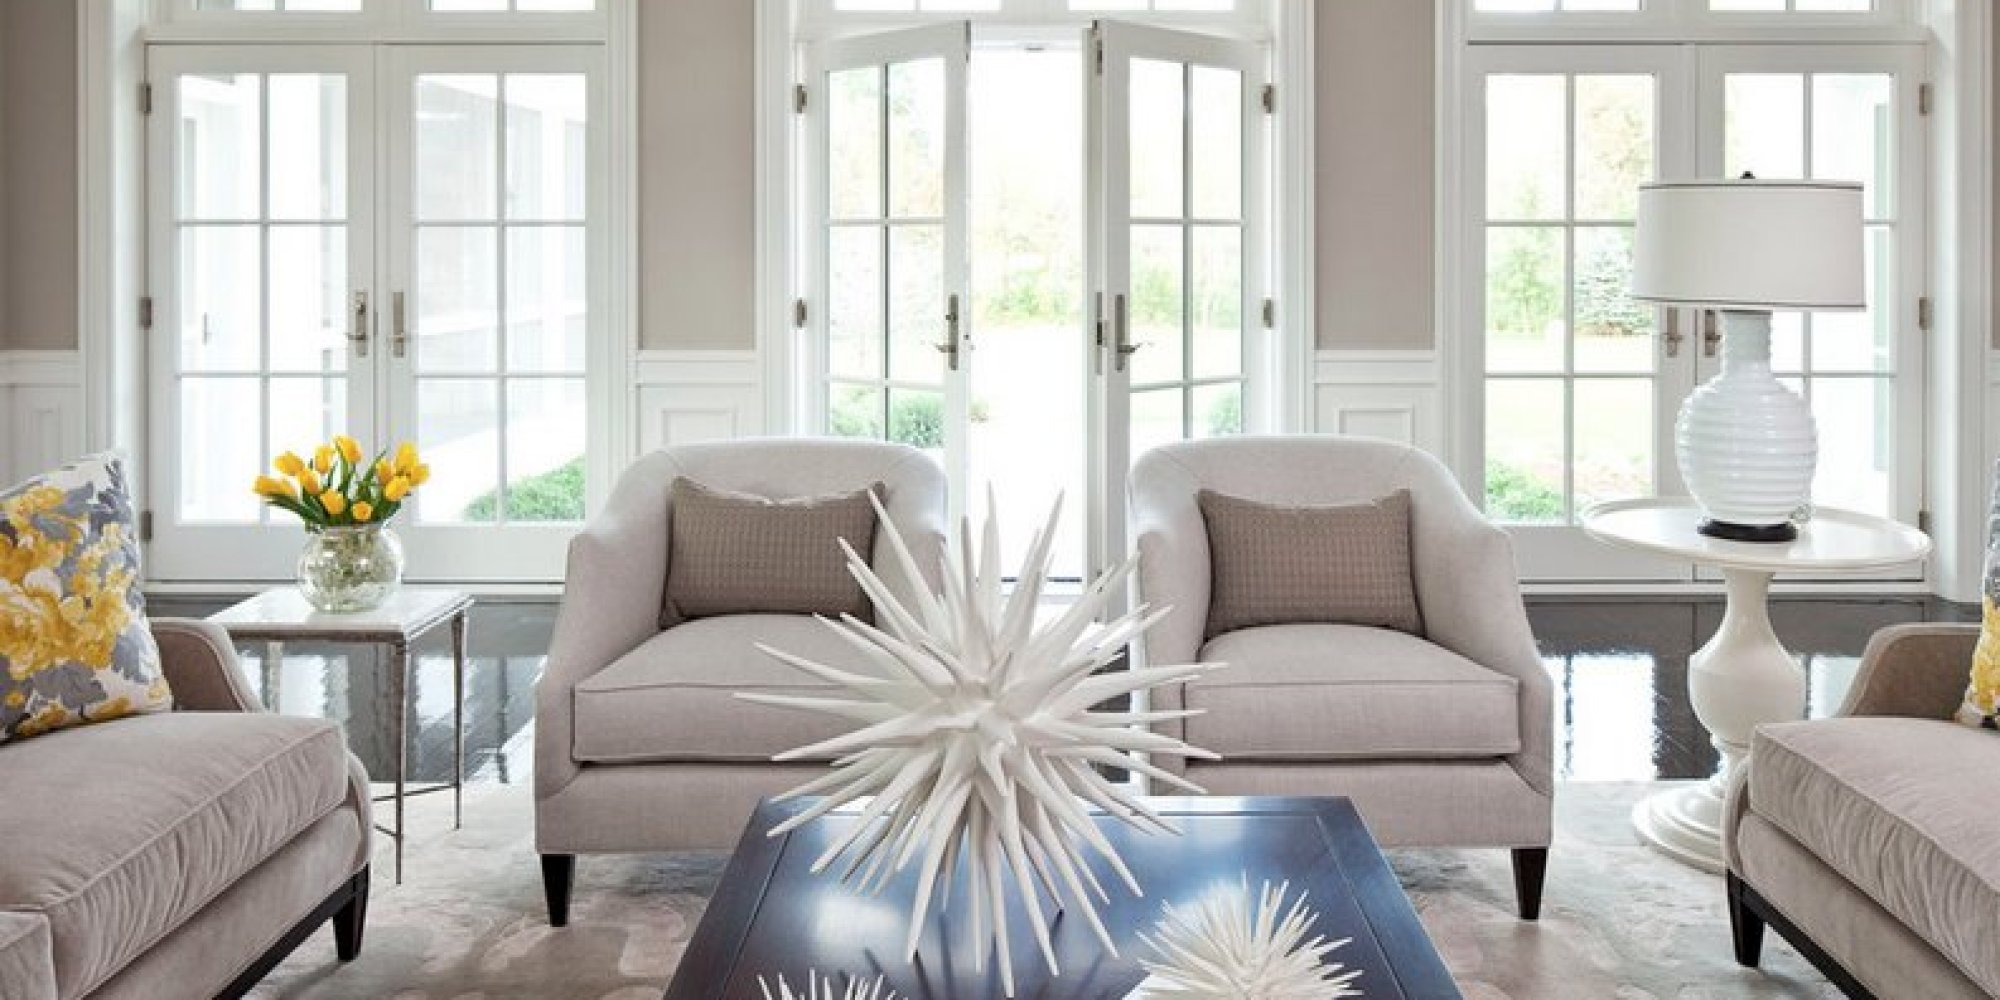 The 8 best neutral paint colors that 39 ll work in any home - Photos of living room paint colors ...